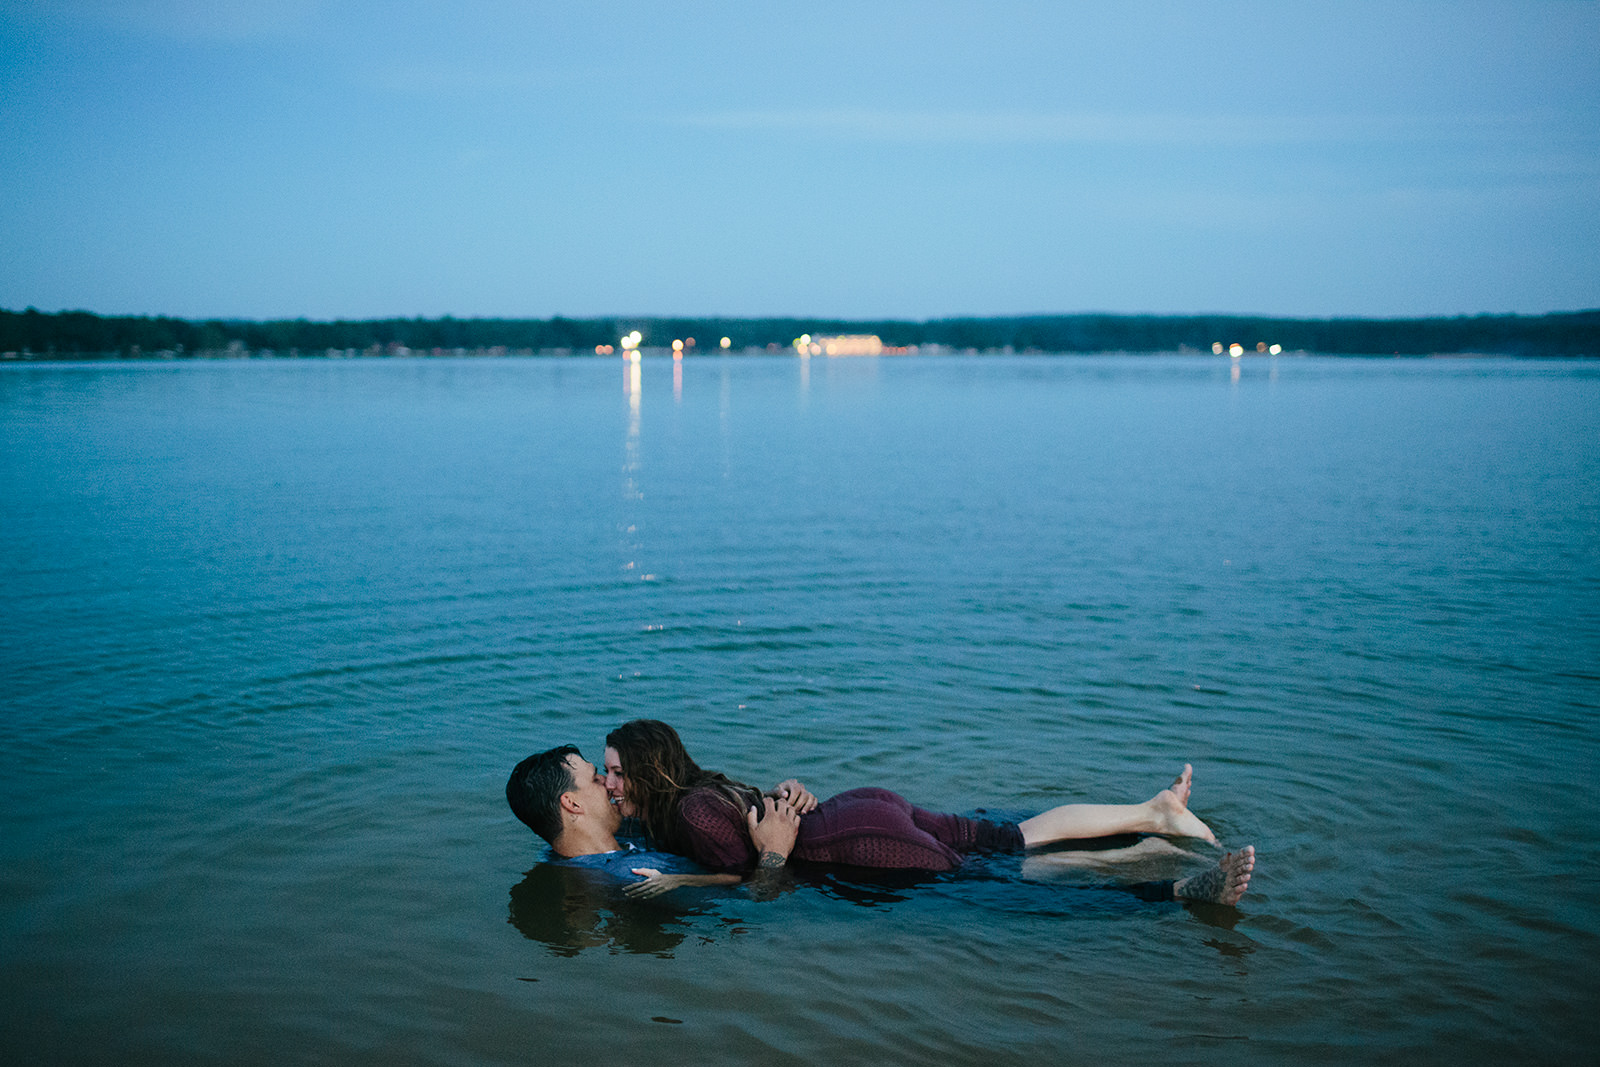 engagement photos in a lake